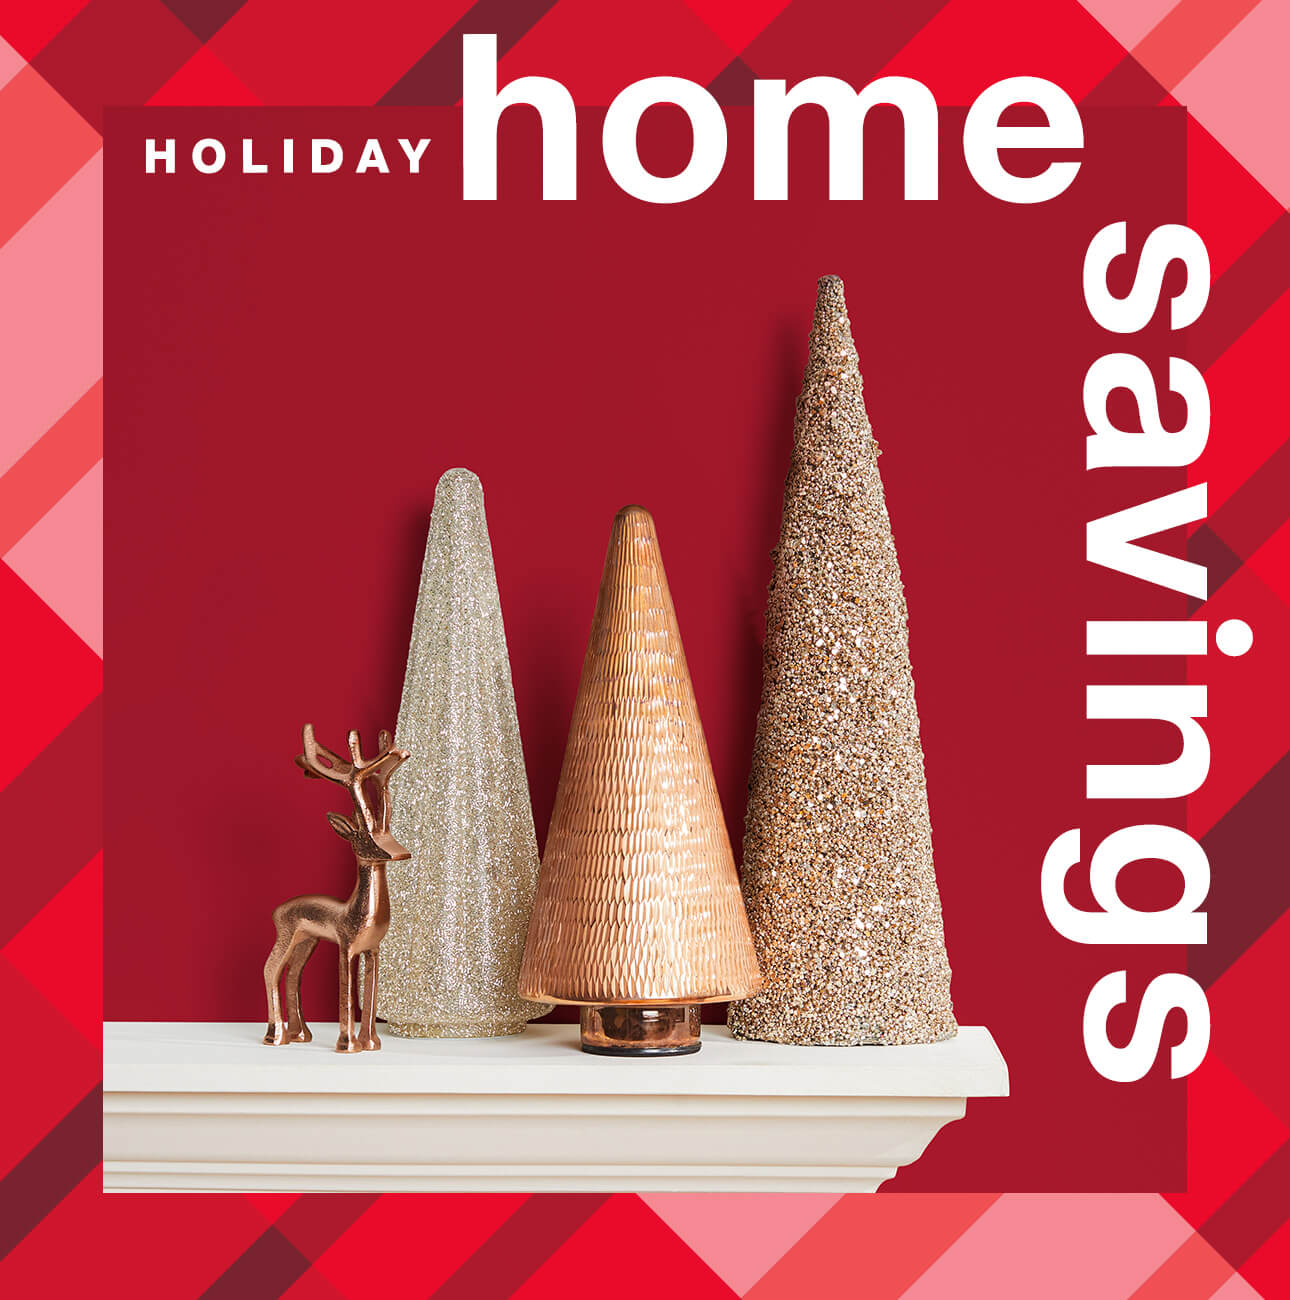 Holiday Home Savings - Shop Now